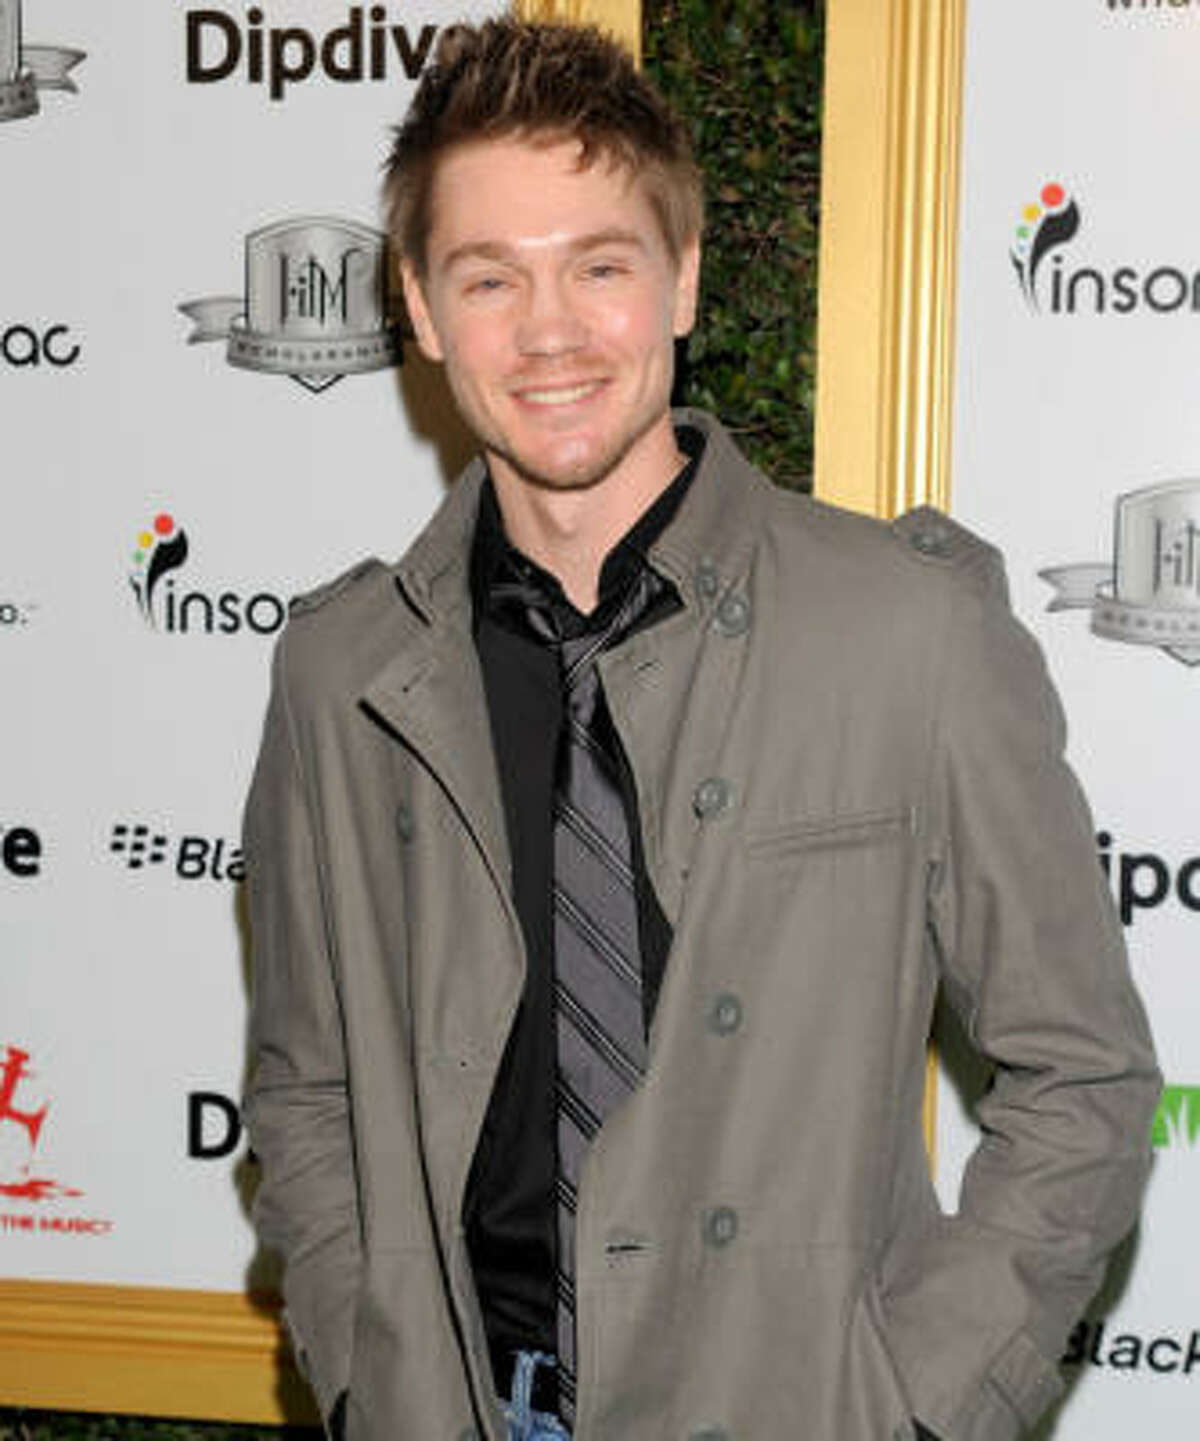 Chad Michael Murray Turns 30 on August 24.